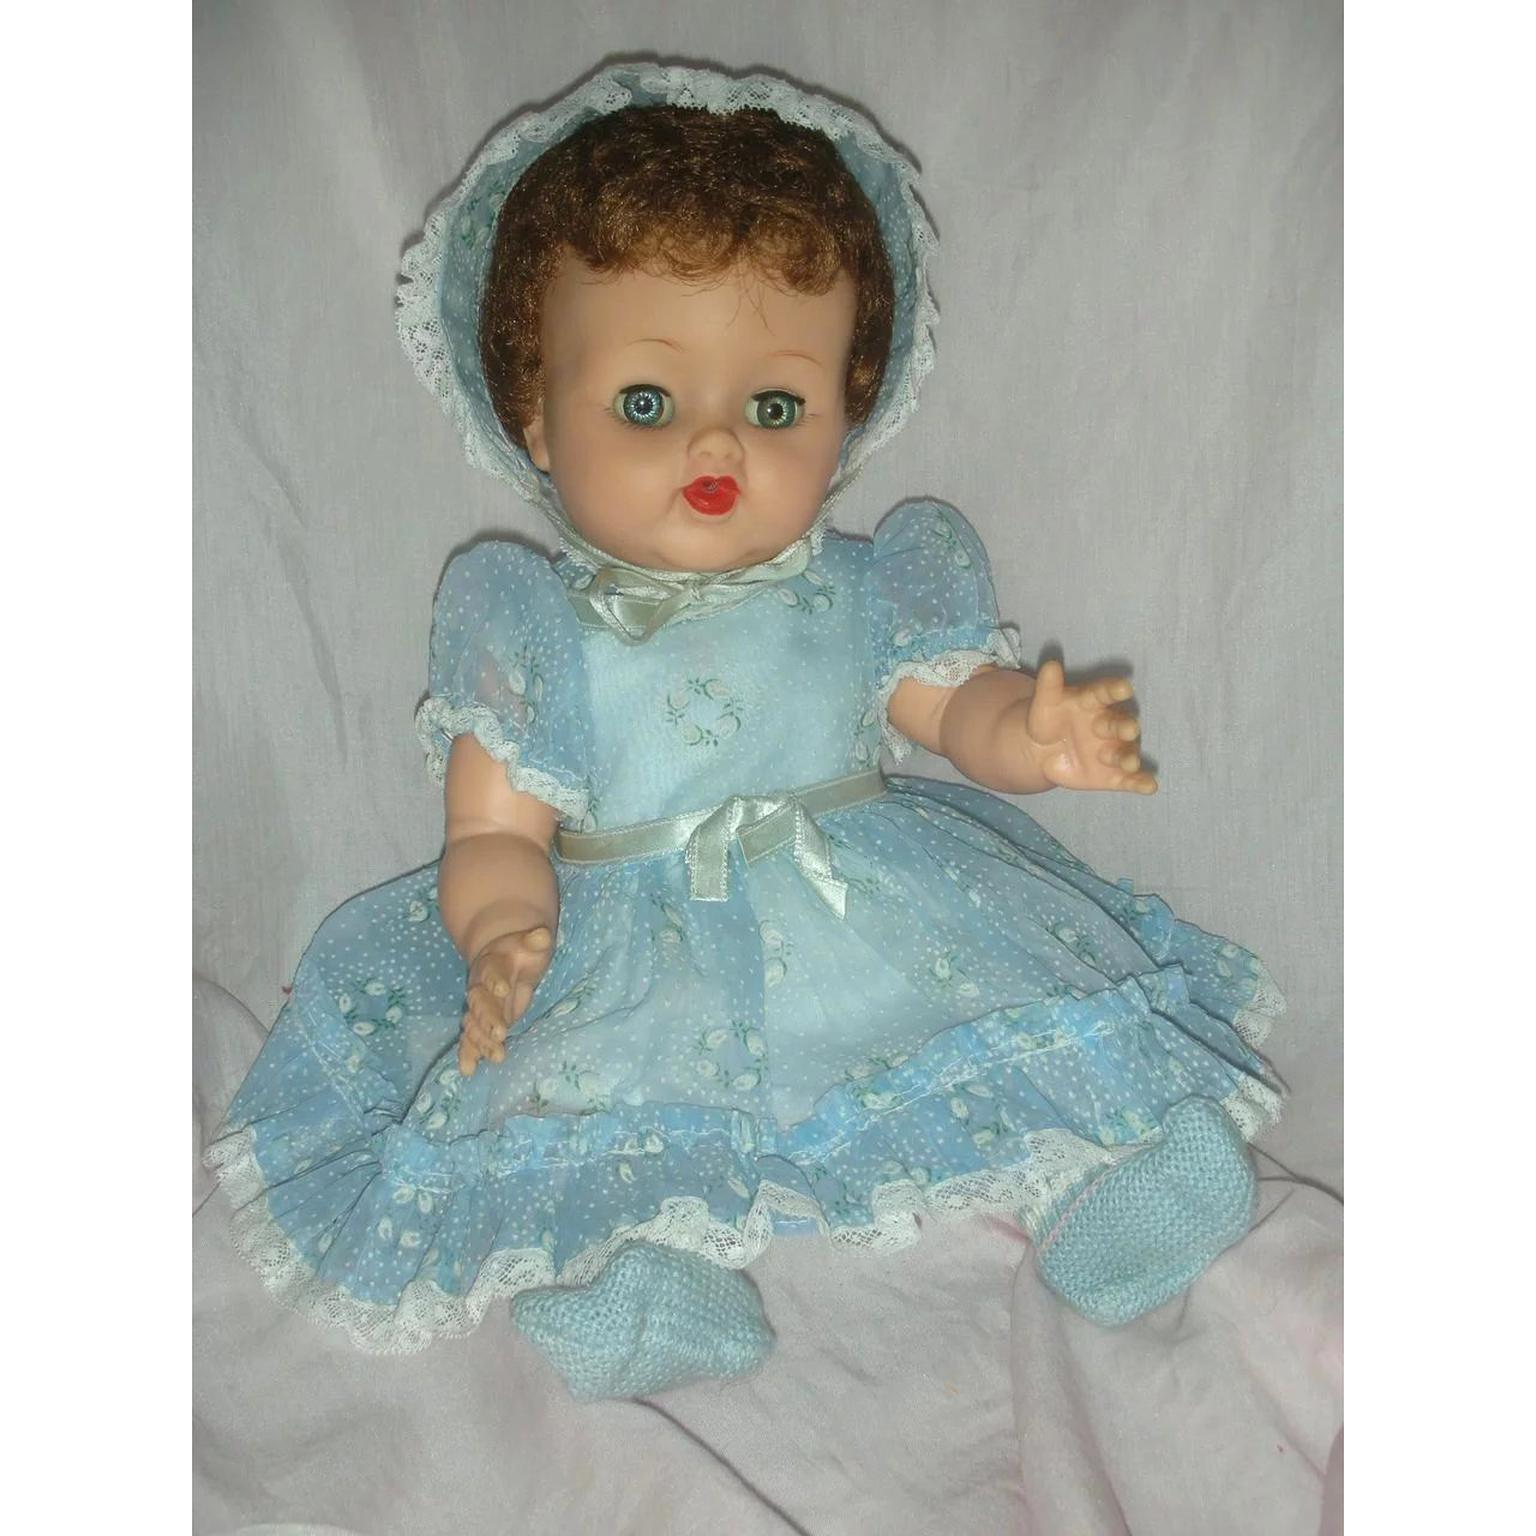 betsy wetsy doll for sale